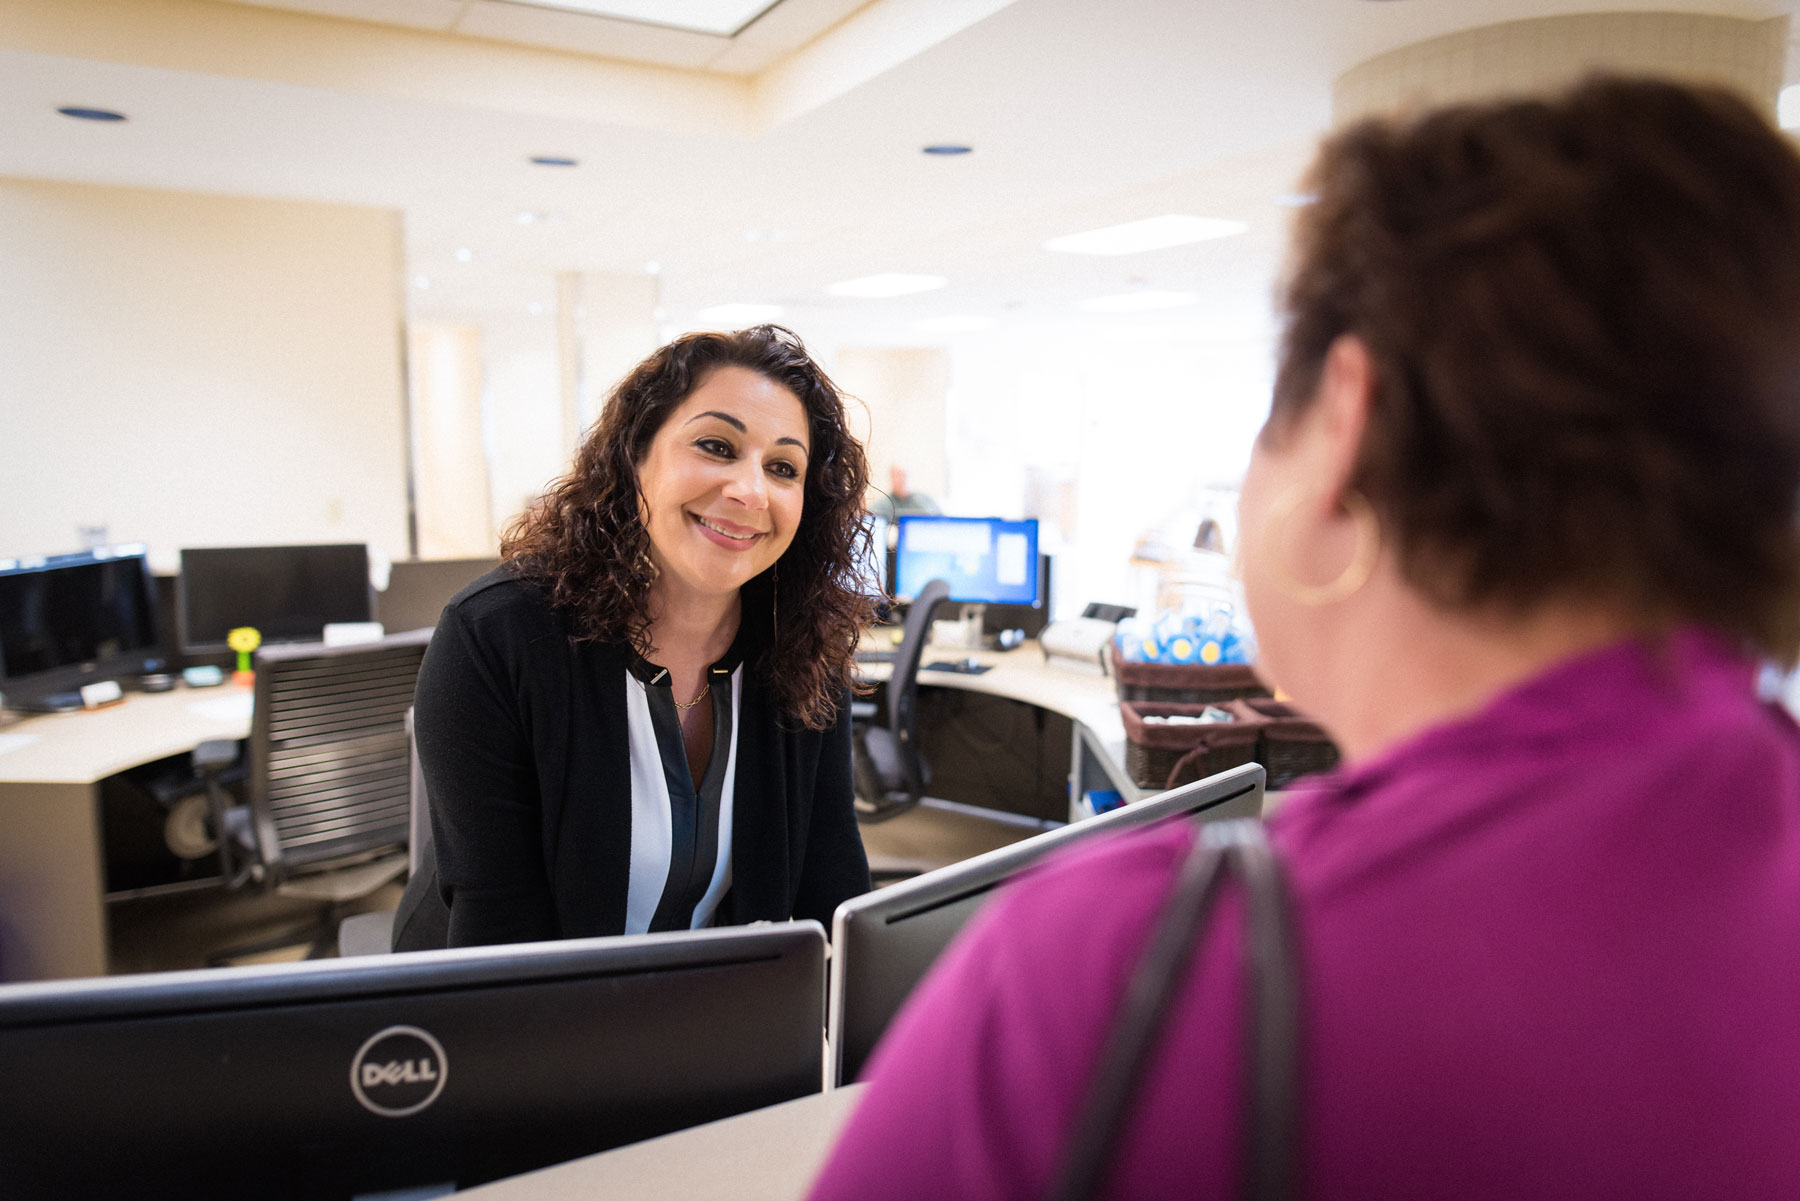 Joanne Dabit-Shadeh, who manages UK HealthCare's Transplant Clinic's front desk, greets Teresa.